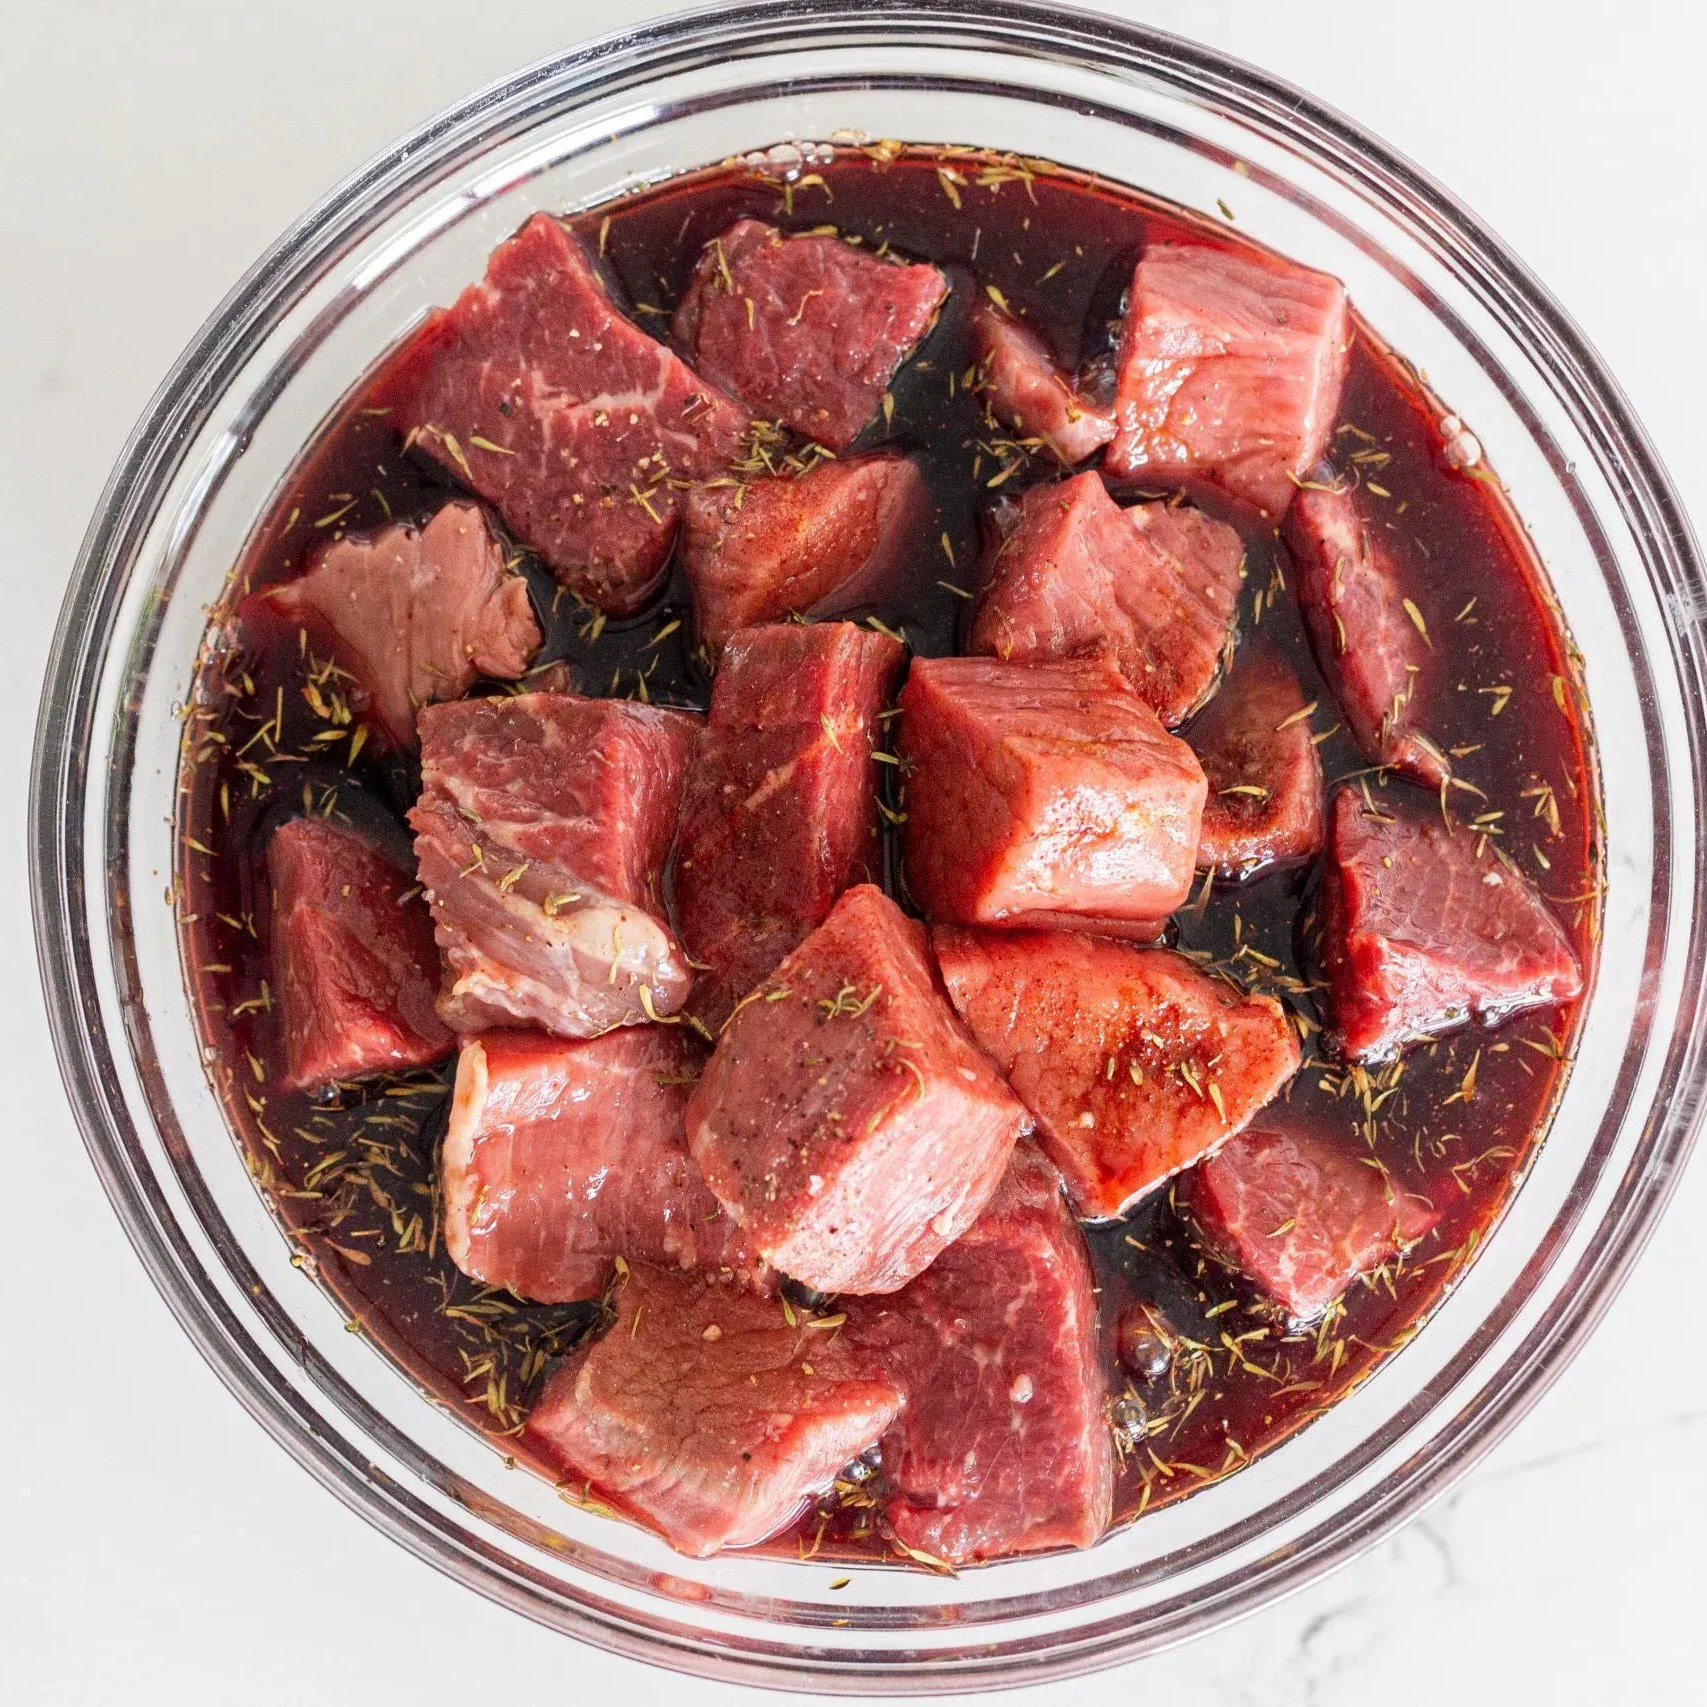 Beef, sauce and steak seasoning